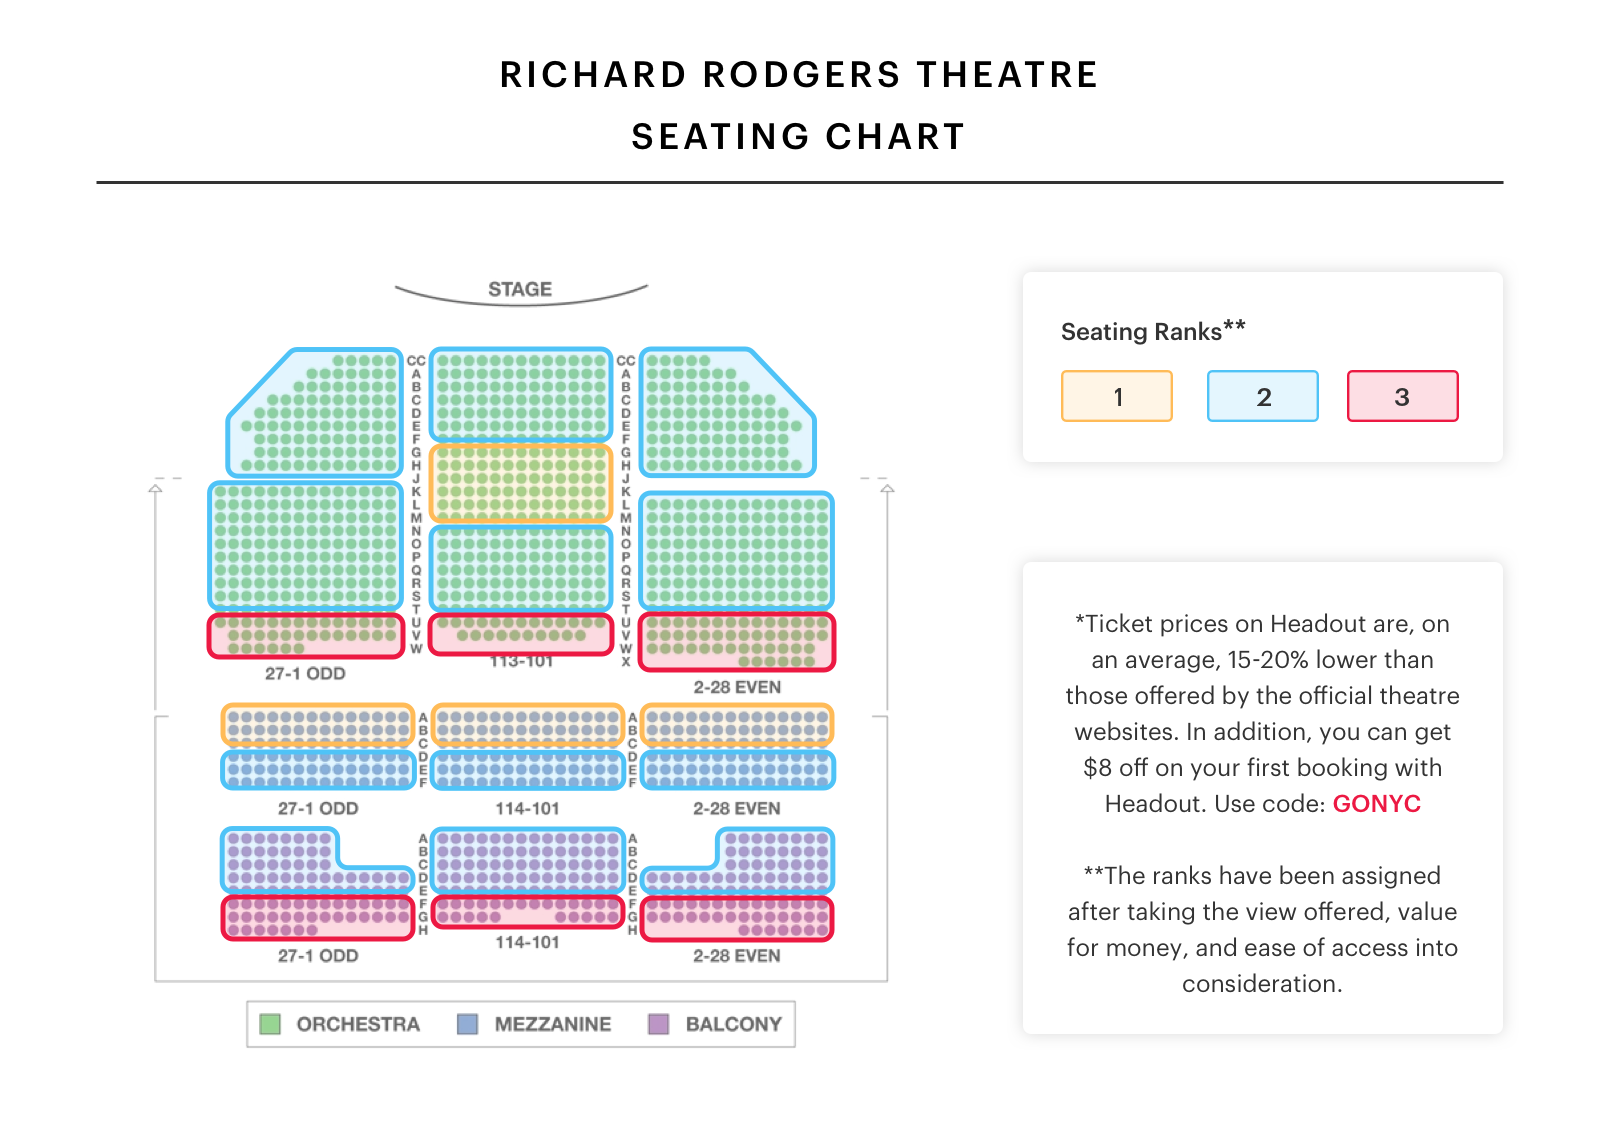 Richard Rodgers Theatre Map Google Search Seating Charts Theater Seating Richard Rodgers